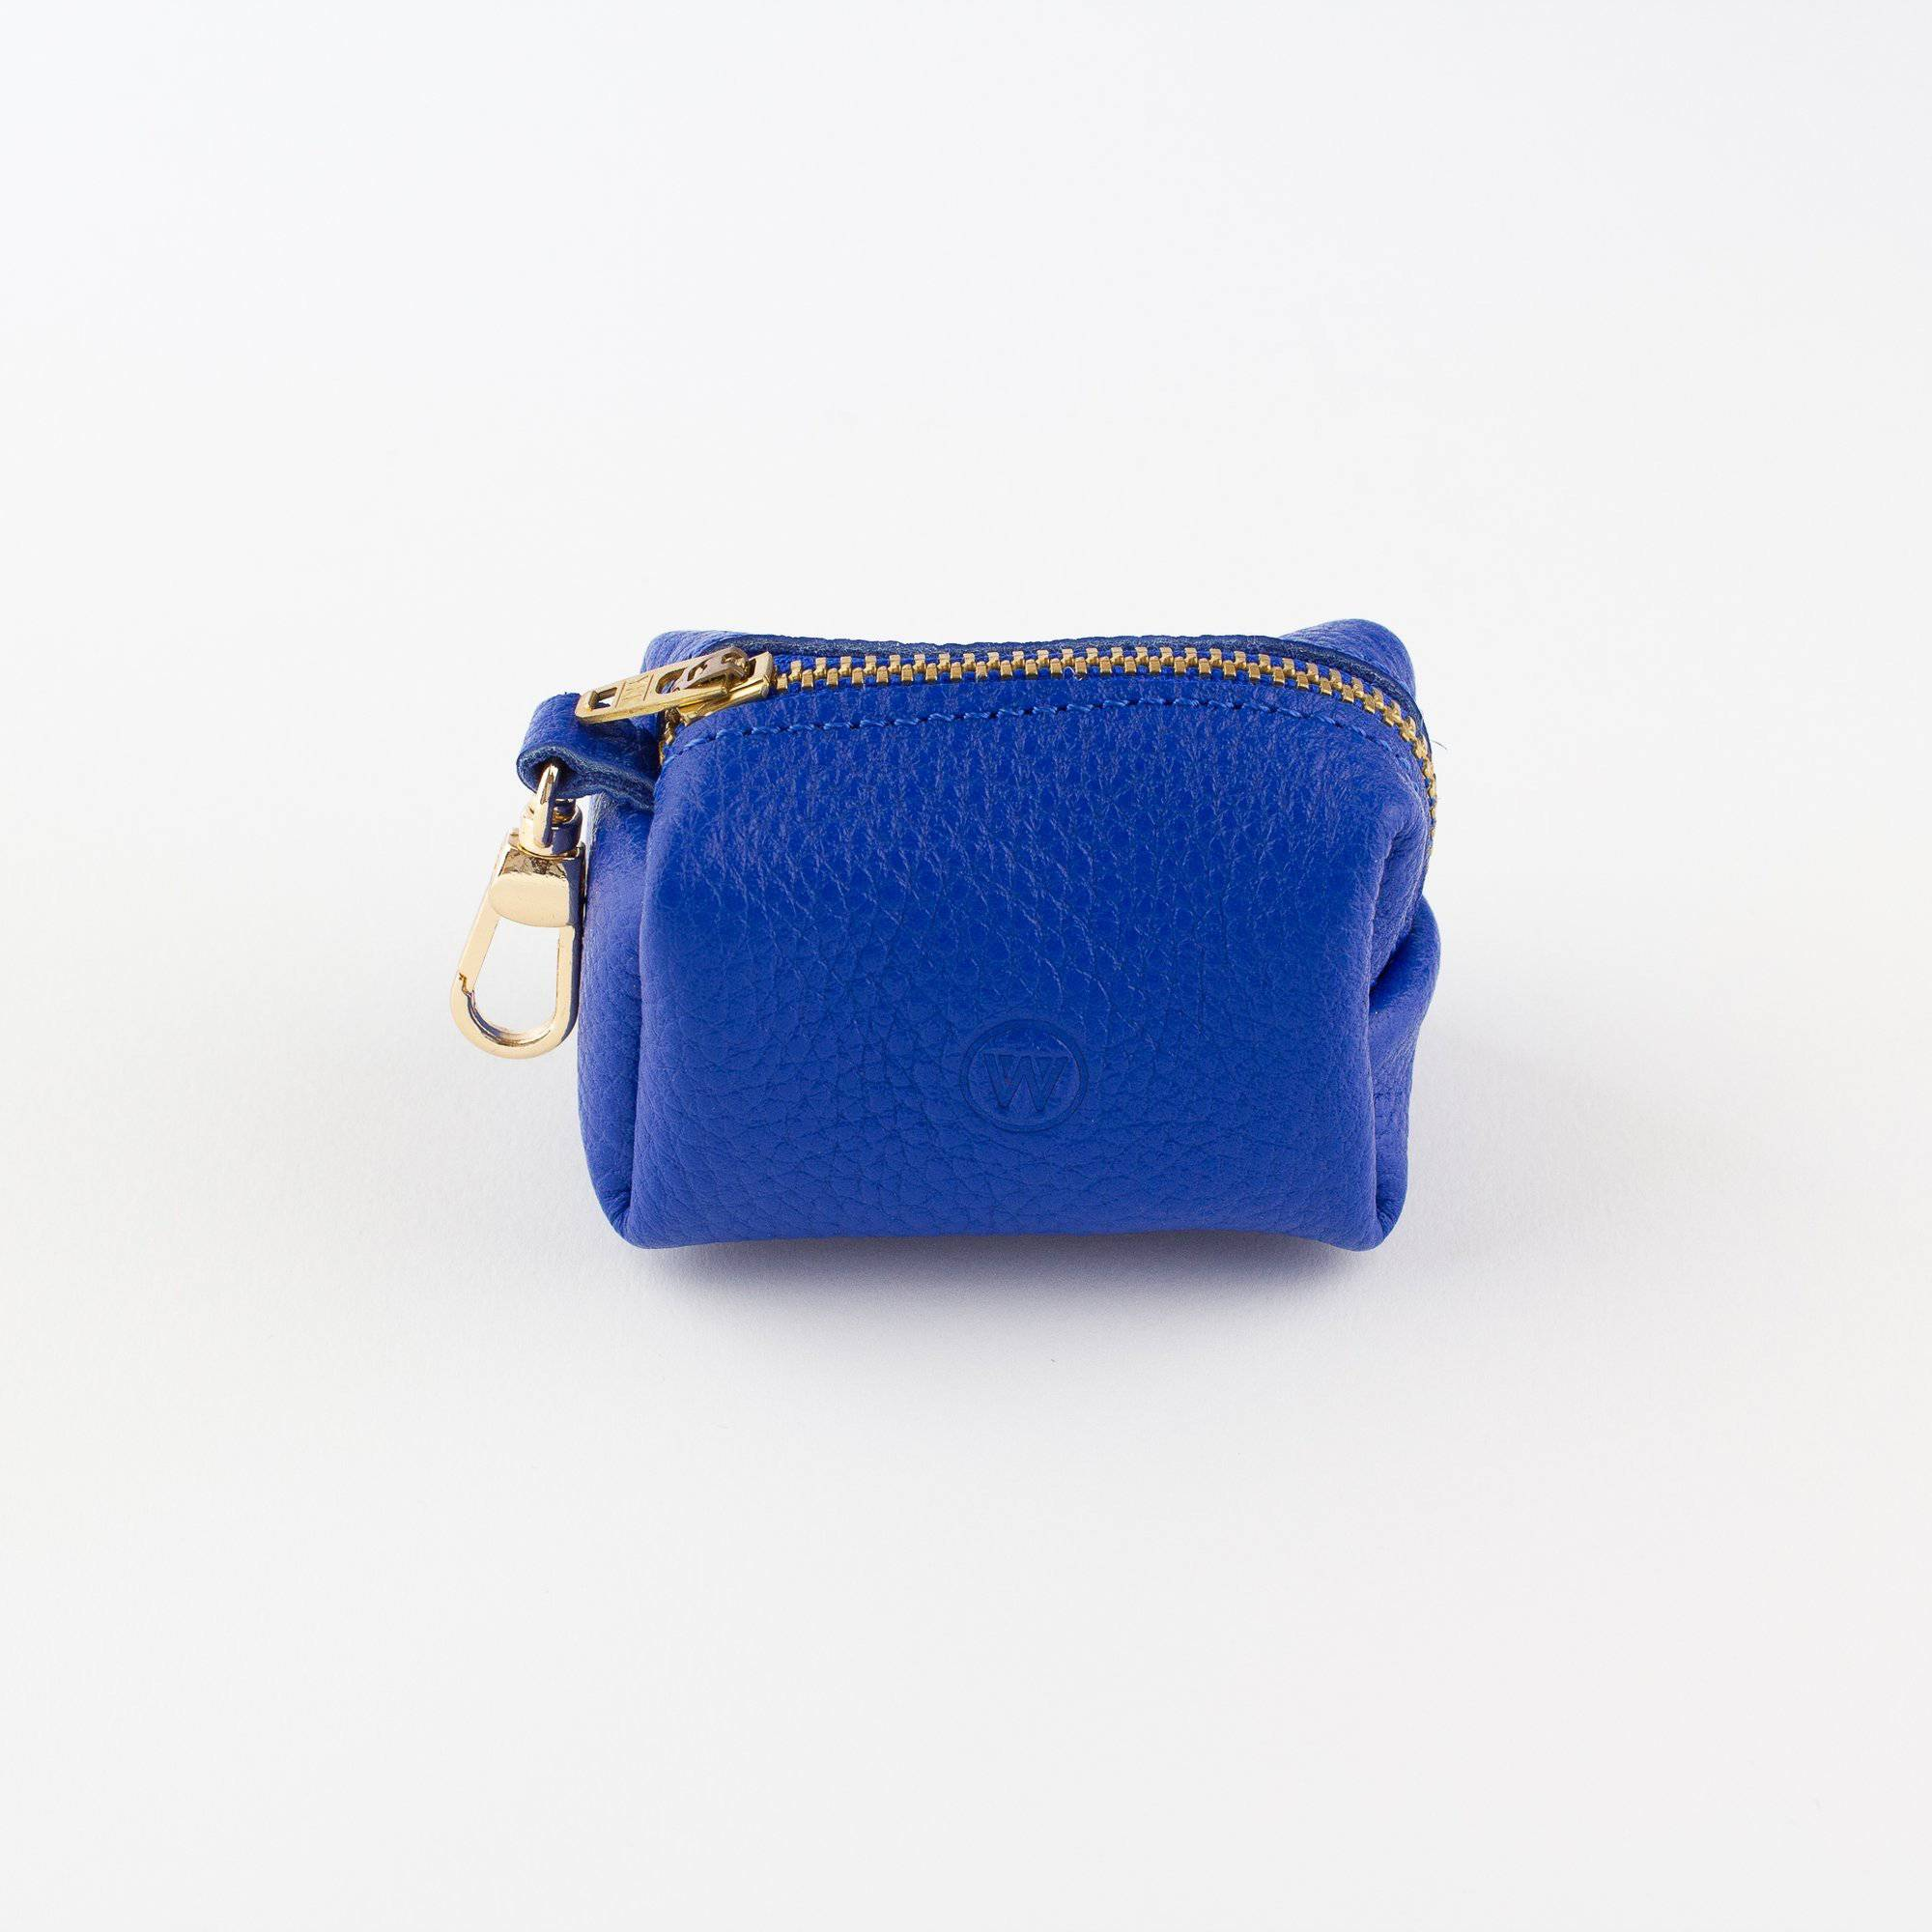 Blue - Leather Poo Bag Holder - [Holler Brighton]